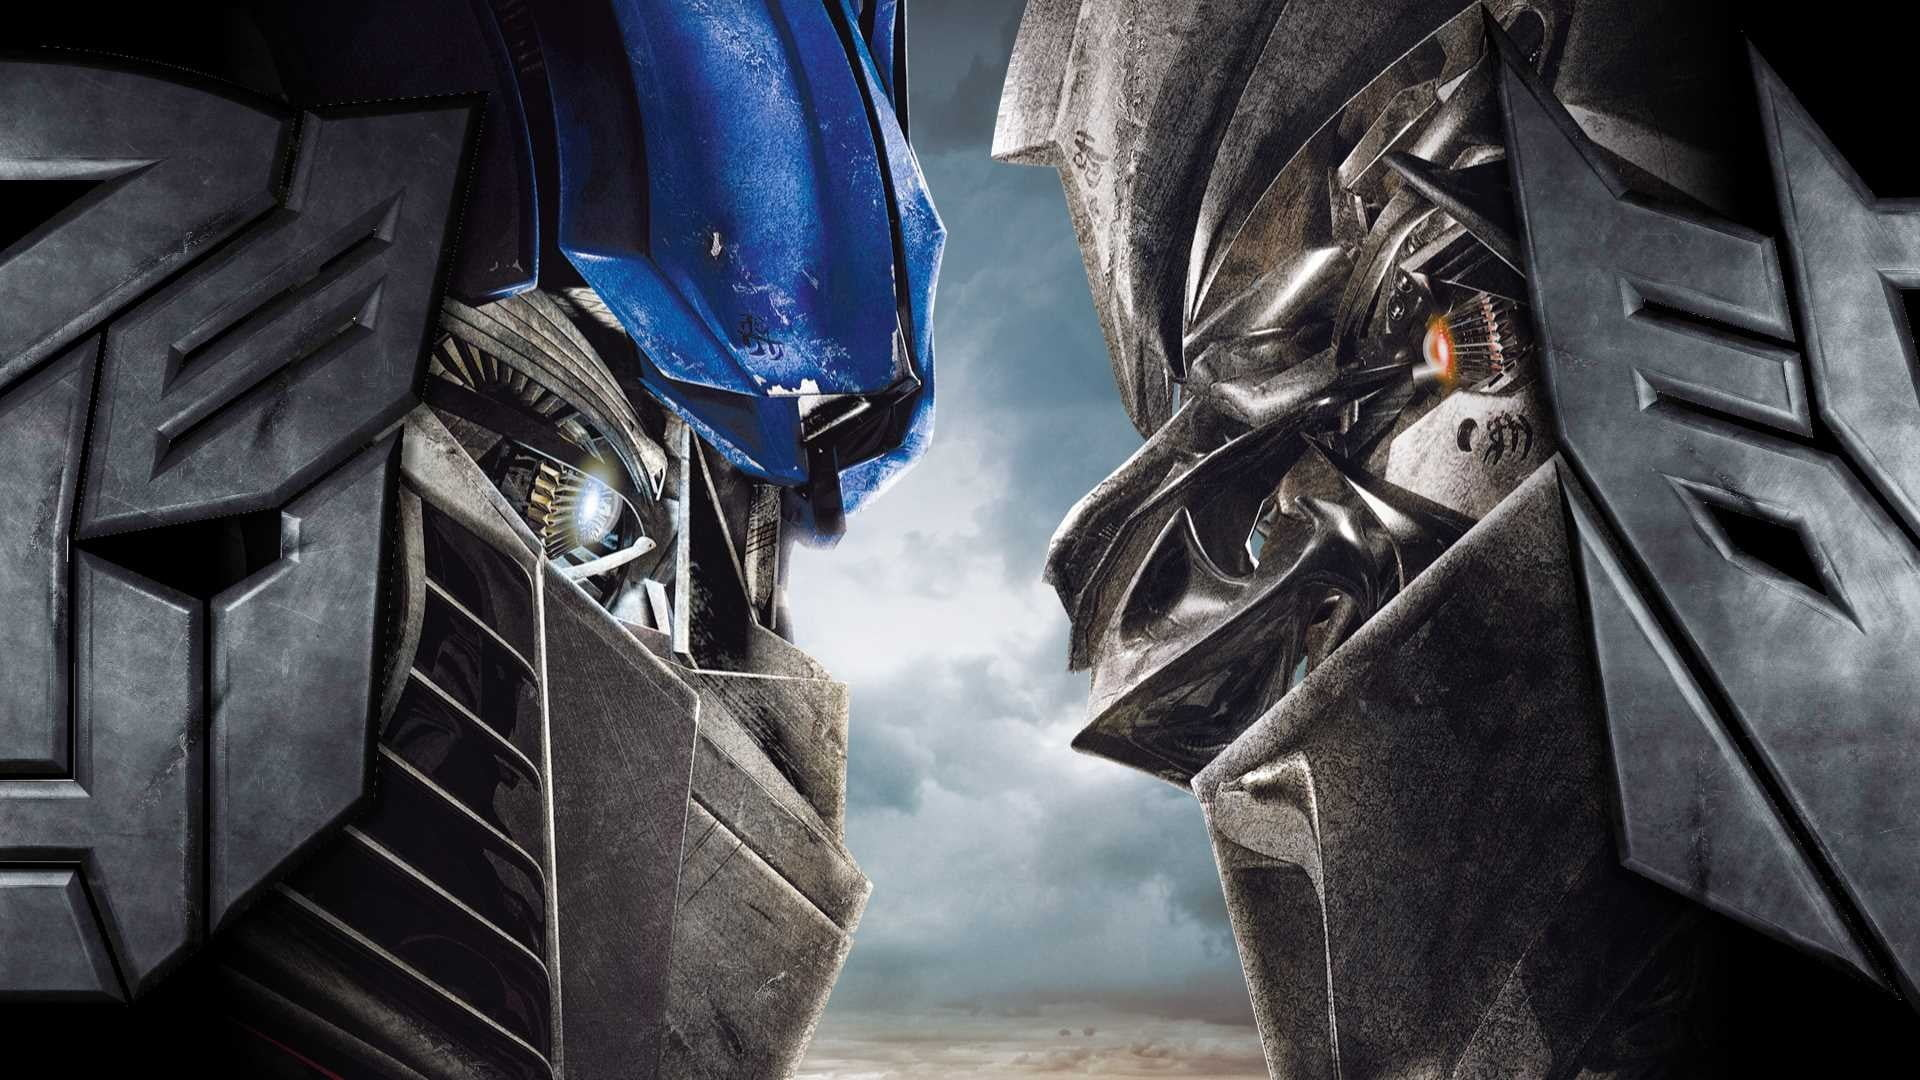 Res: 1920x1080, Transformers Autobots Optimus Prime and Megatron Decepticons digital  wallpaper, movies, Transformers HD wallpaper